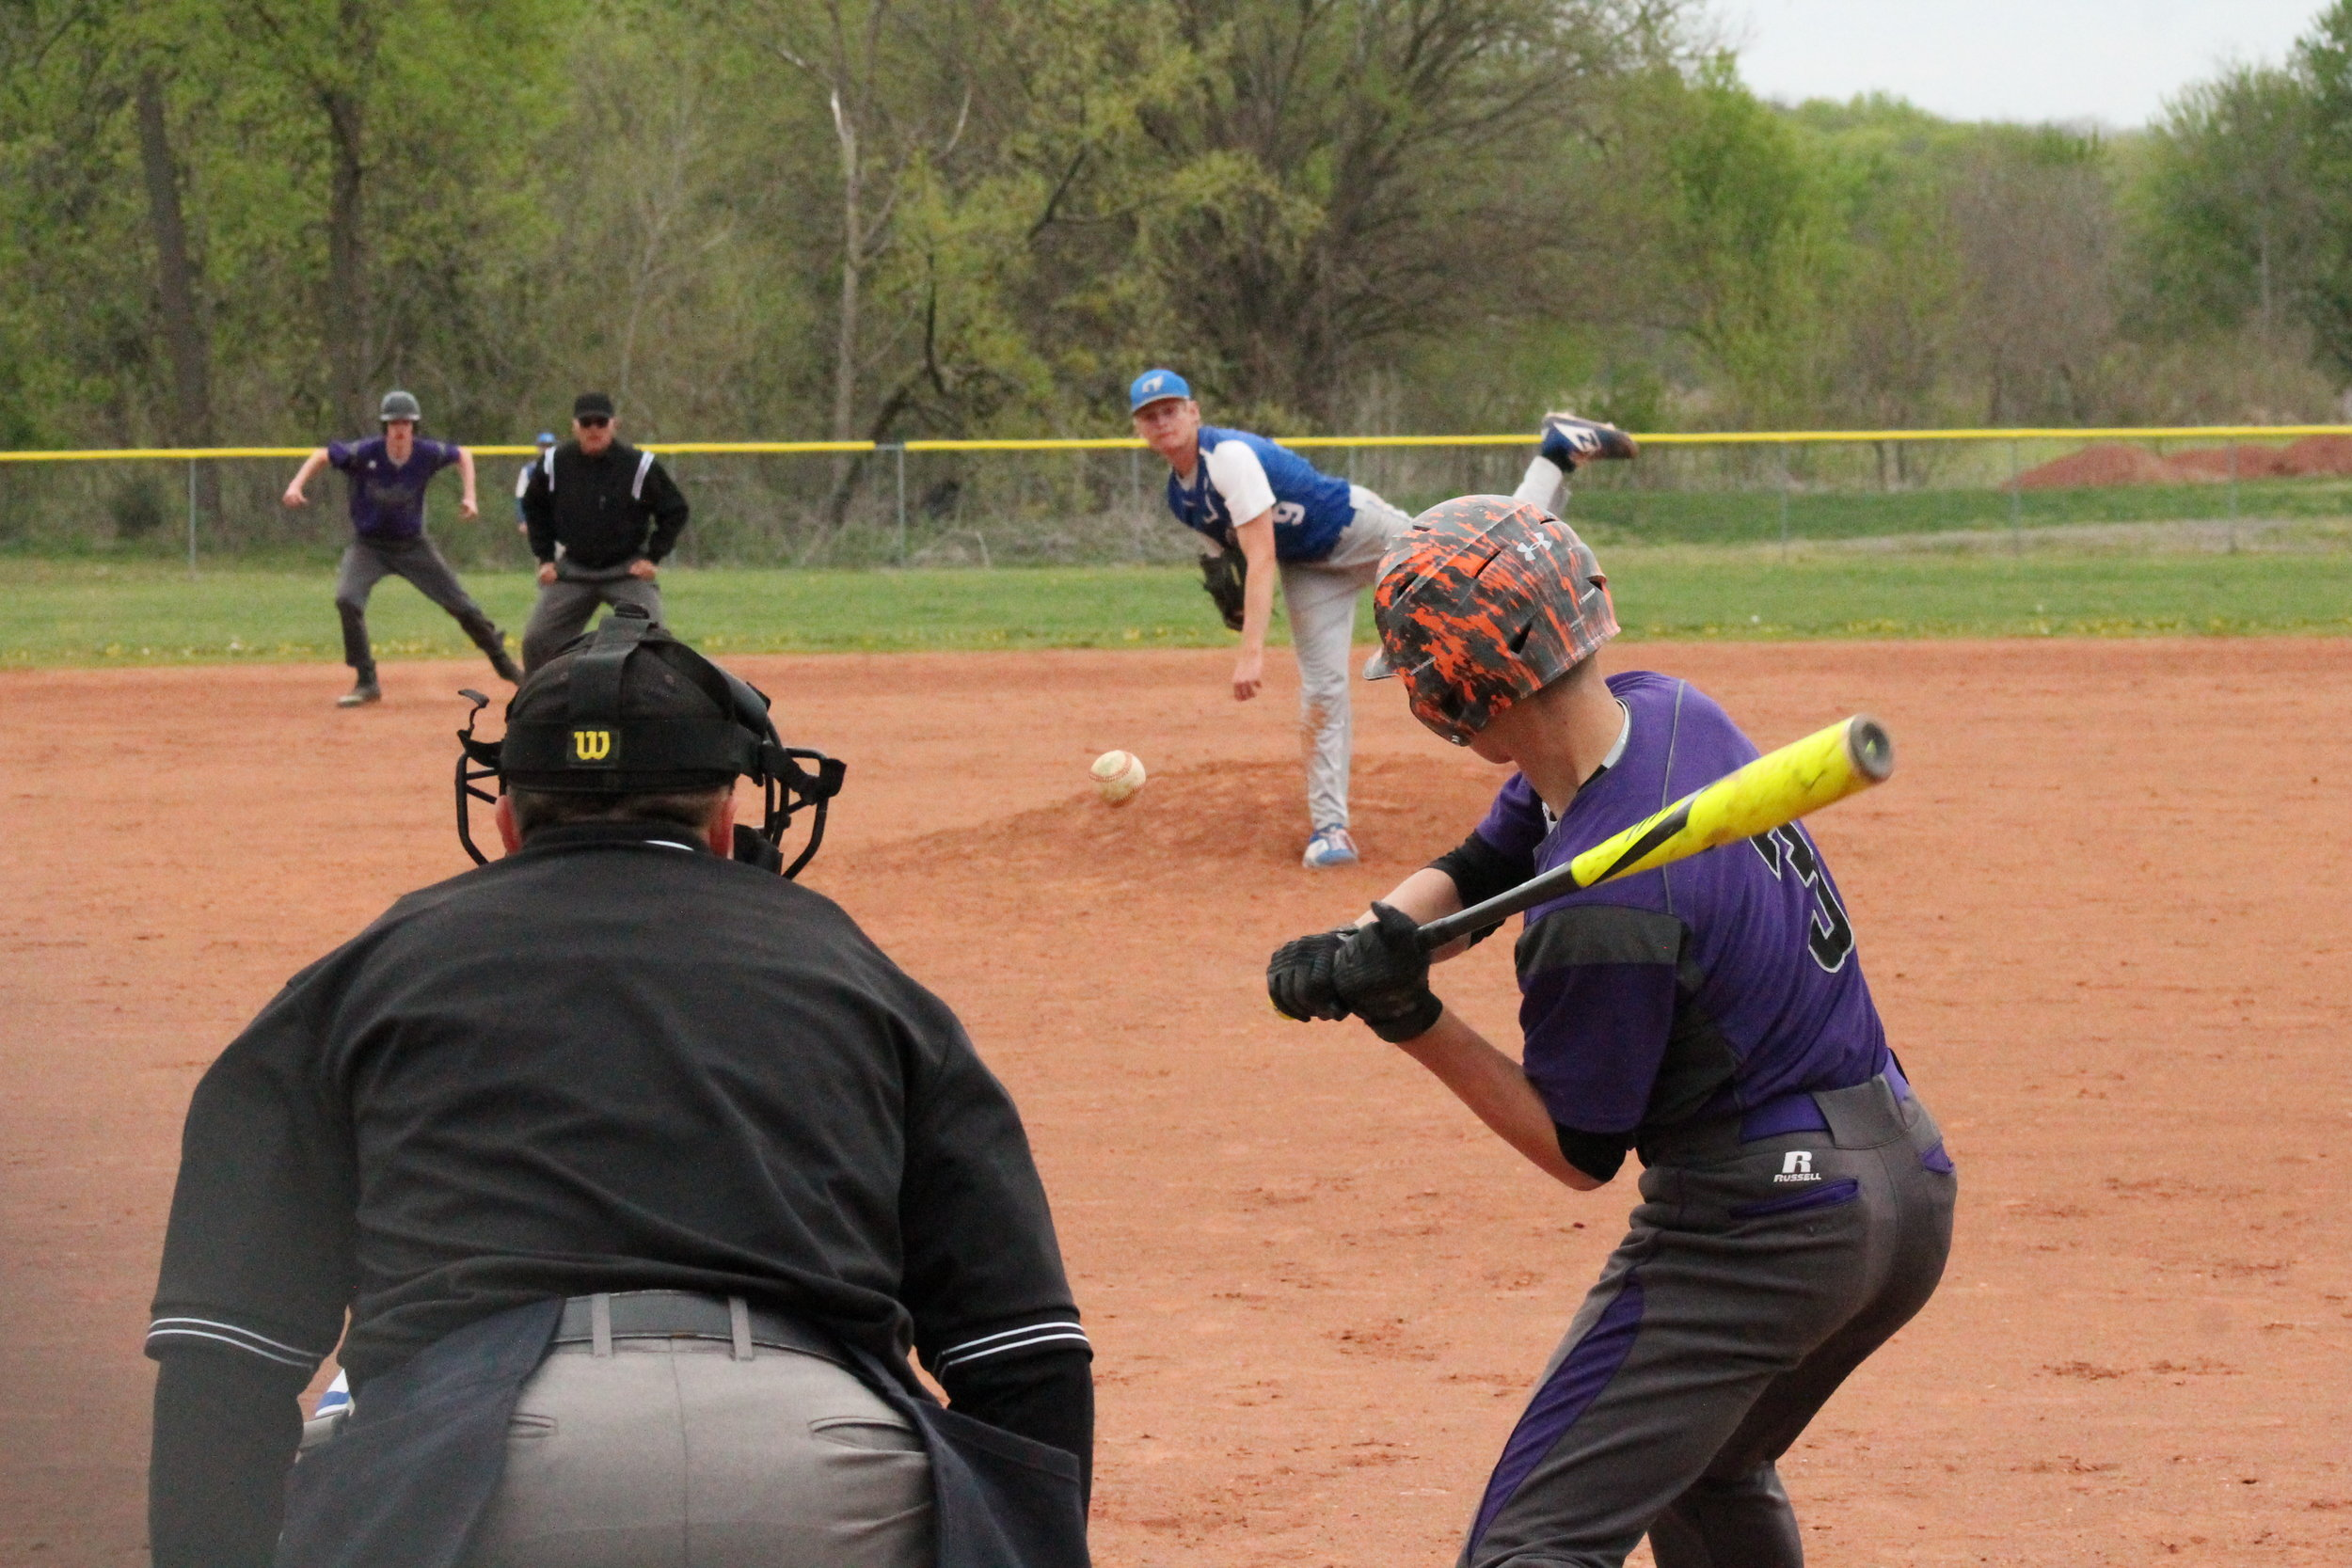 BREANNA CHEADLE/Citizen photo West Platte's Wyatt Kleman delivers a pitch home to North Platte batter Matrix Large during a game on Tuesday, April 23 in Dearborn. West Platte won the KCI Conference game, 9-5.